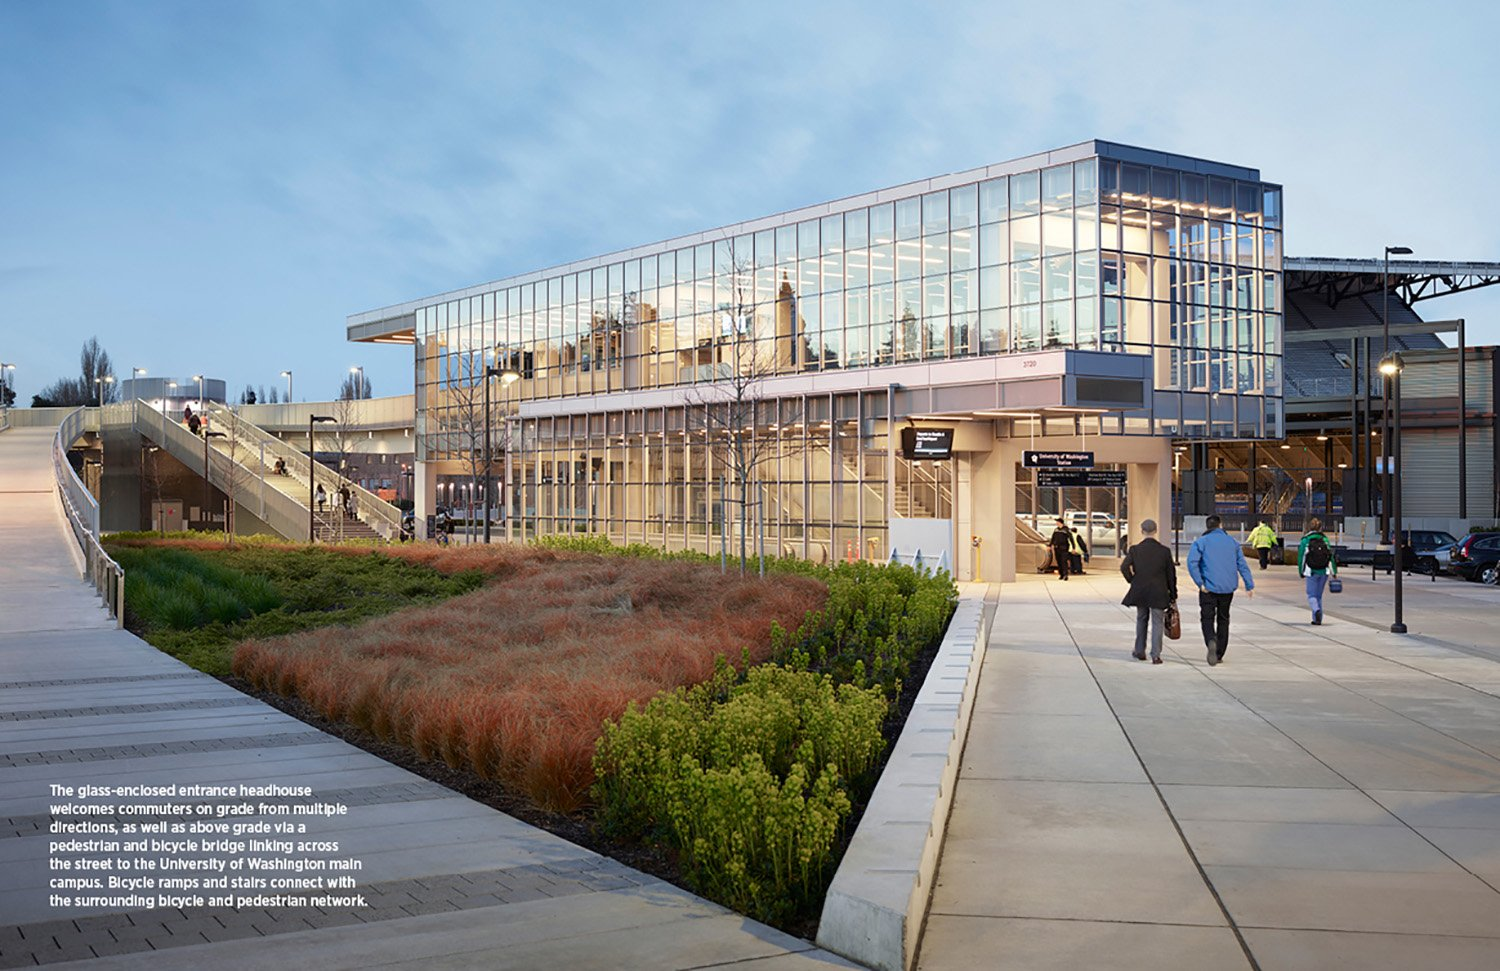 The glass-enclosed entrance headhouse welcomes commuters on grade from multiple directions, as well as above grade via a pedestrian and bicycle bridge linking across the street to the University of Washing Kevin Scott